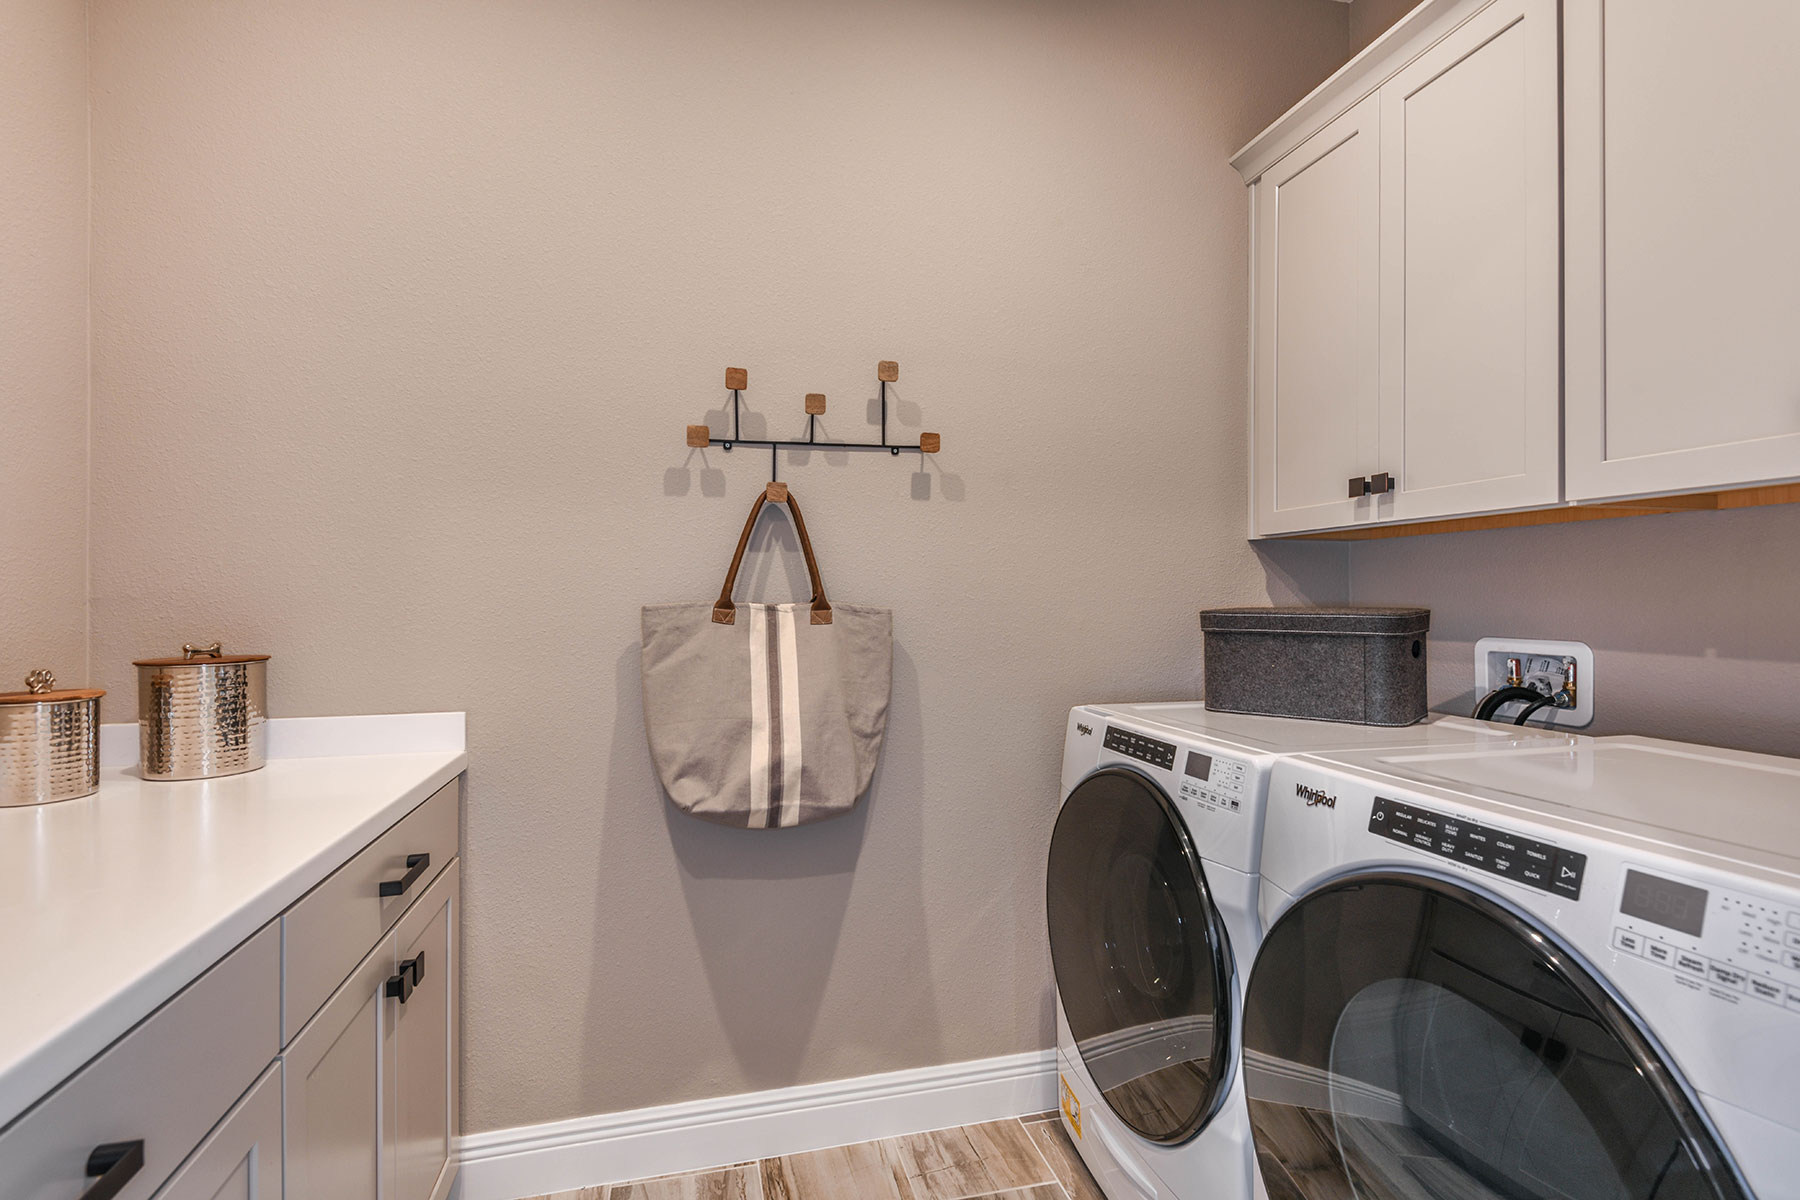 Elm Plan Laundry at Parkview at Long Lake Ranch in Lutz Florida by Mattamy Homes